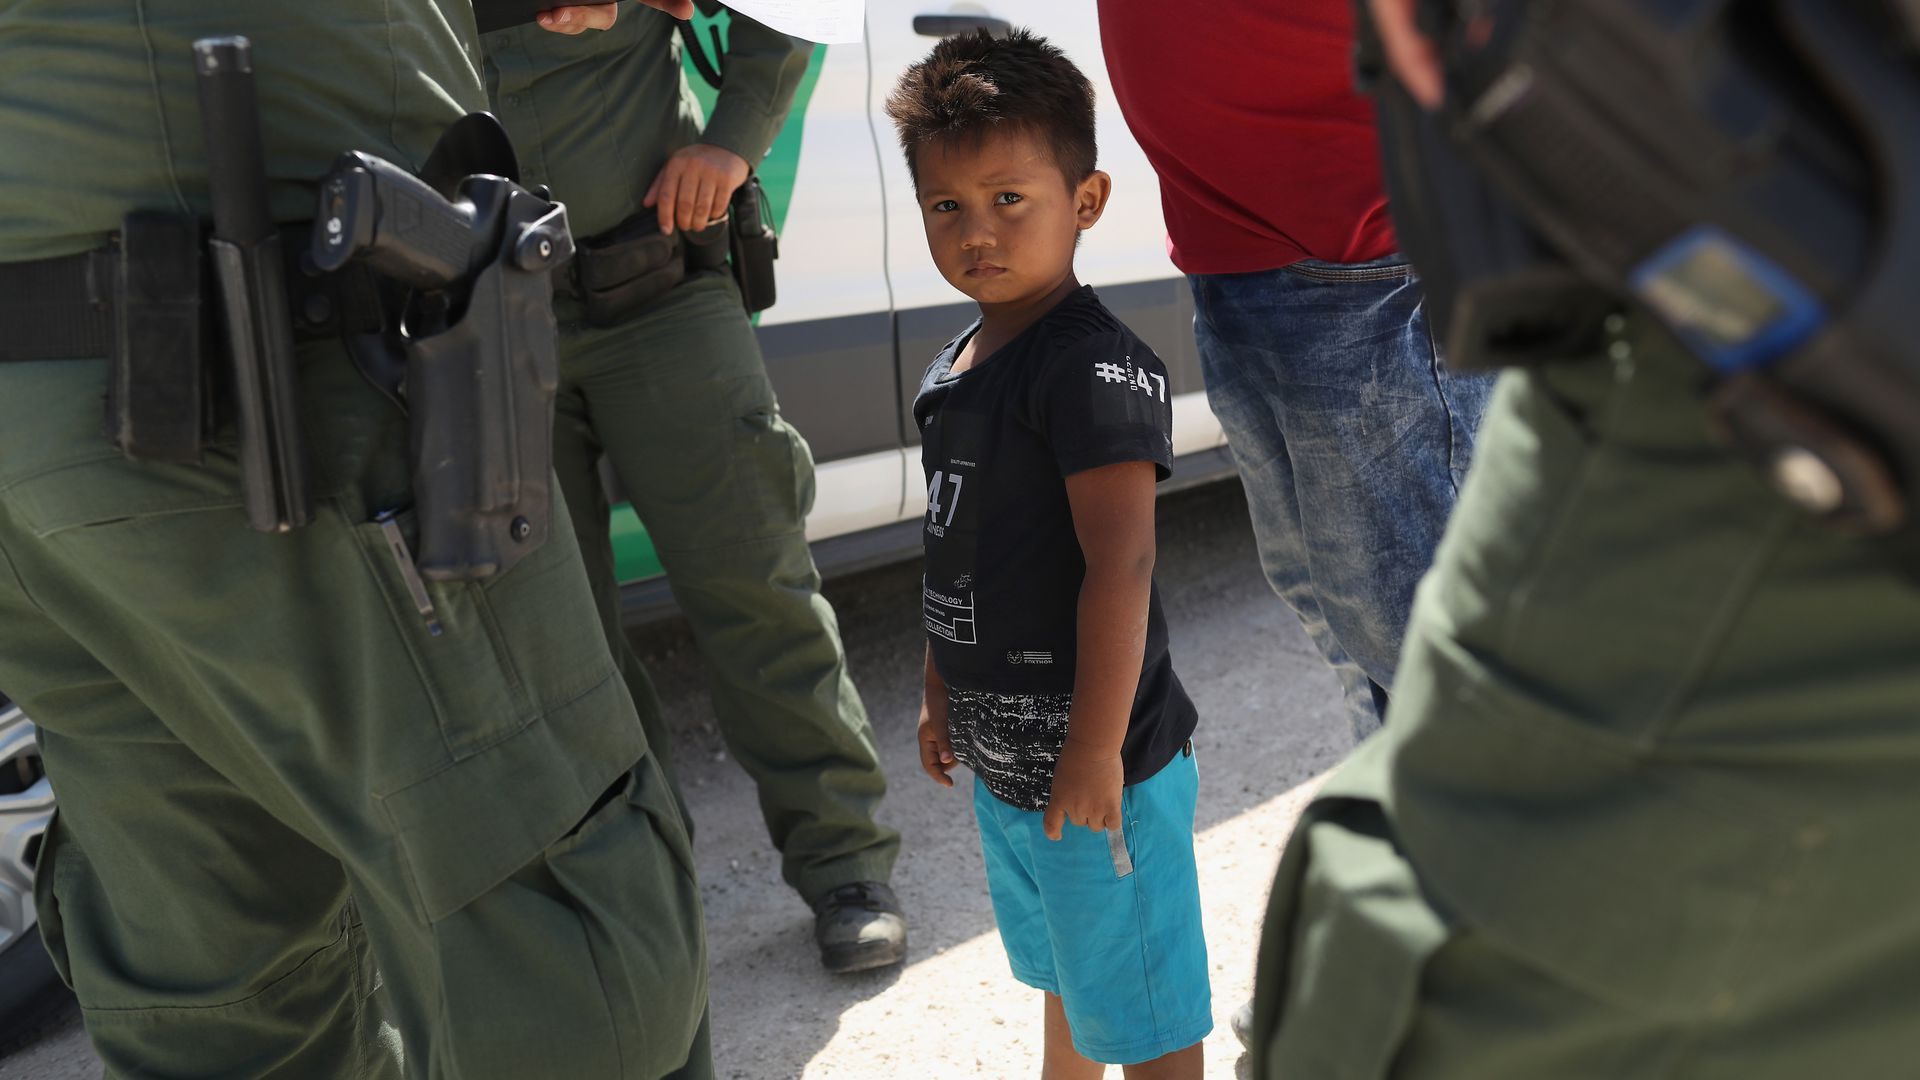 Border agents take a child into custody in Texas